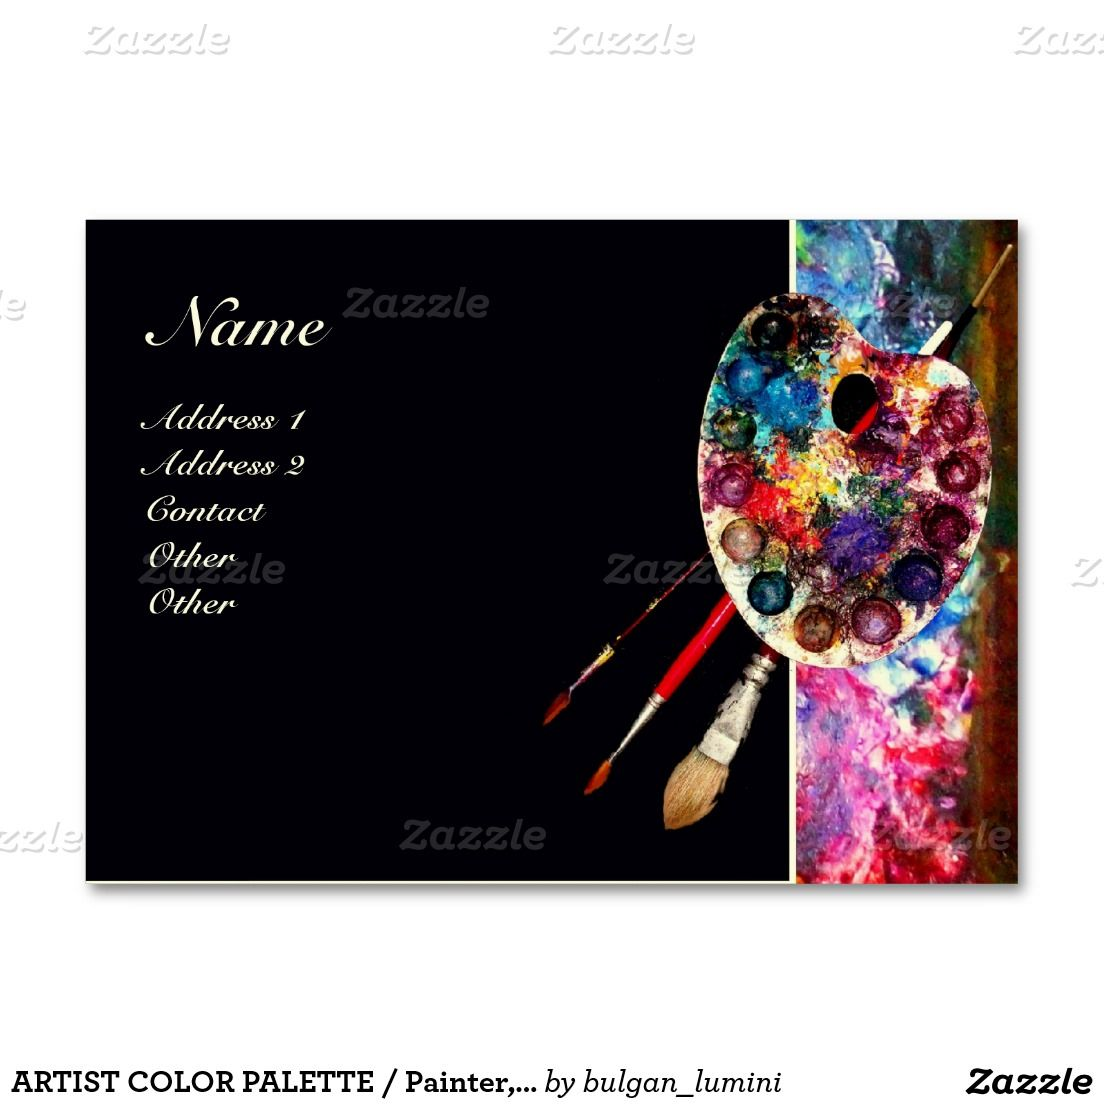 Artist color palette painterfine art materials business card artist color palette painterfine art materials business card colourmoves